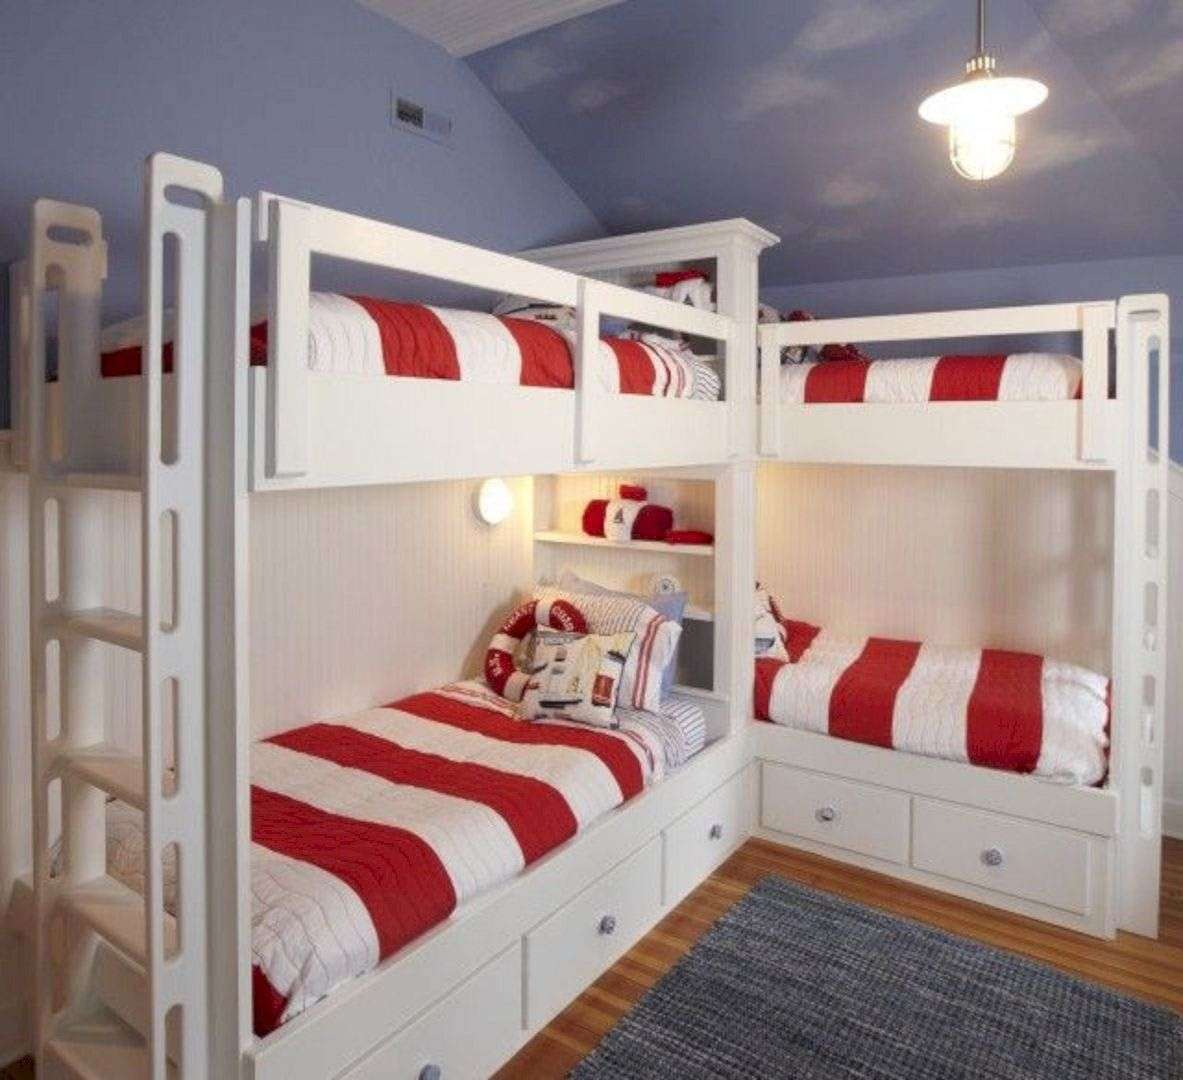 Free DIY Bunk Bed Plans & Ideas that Will Save a Lot of